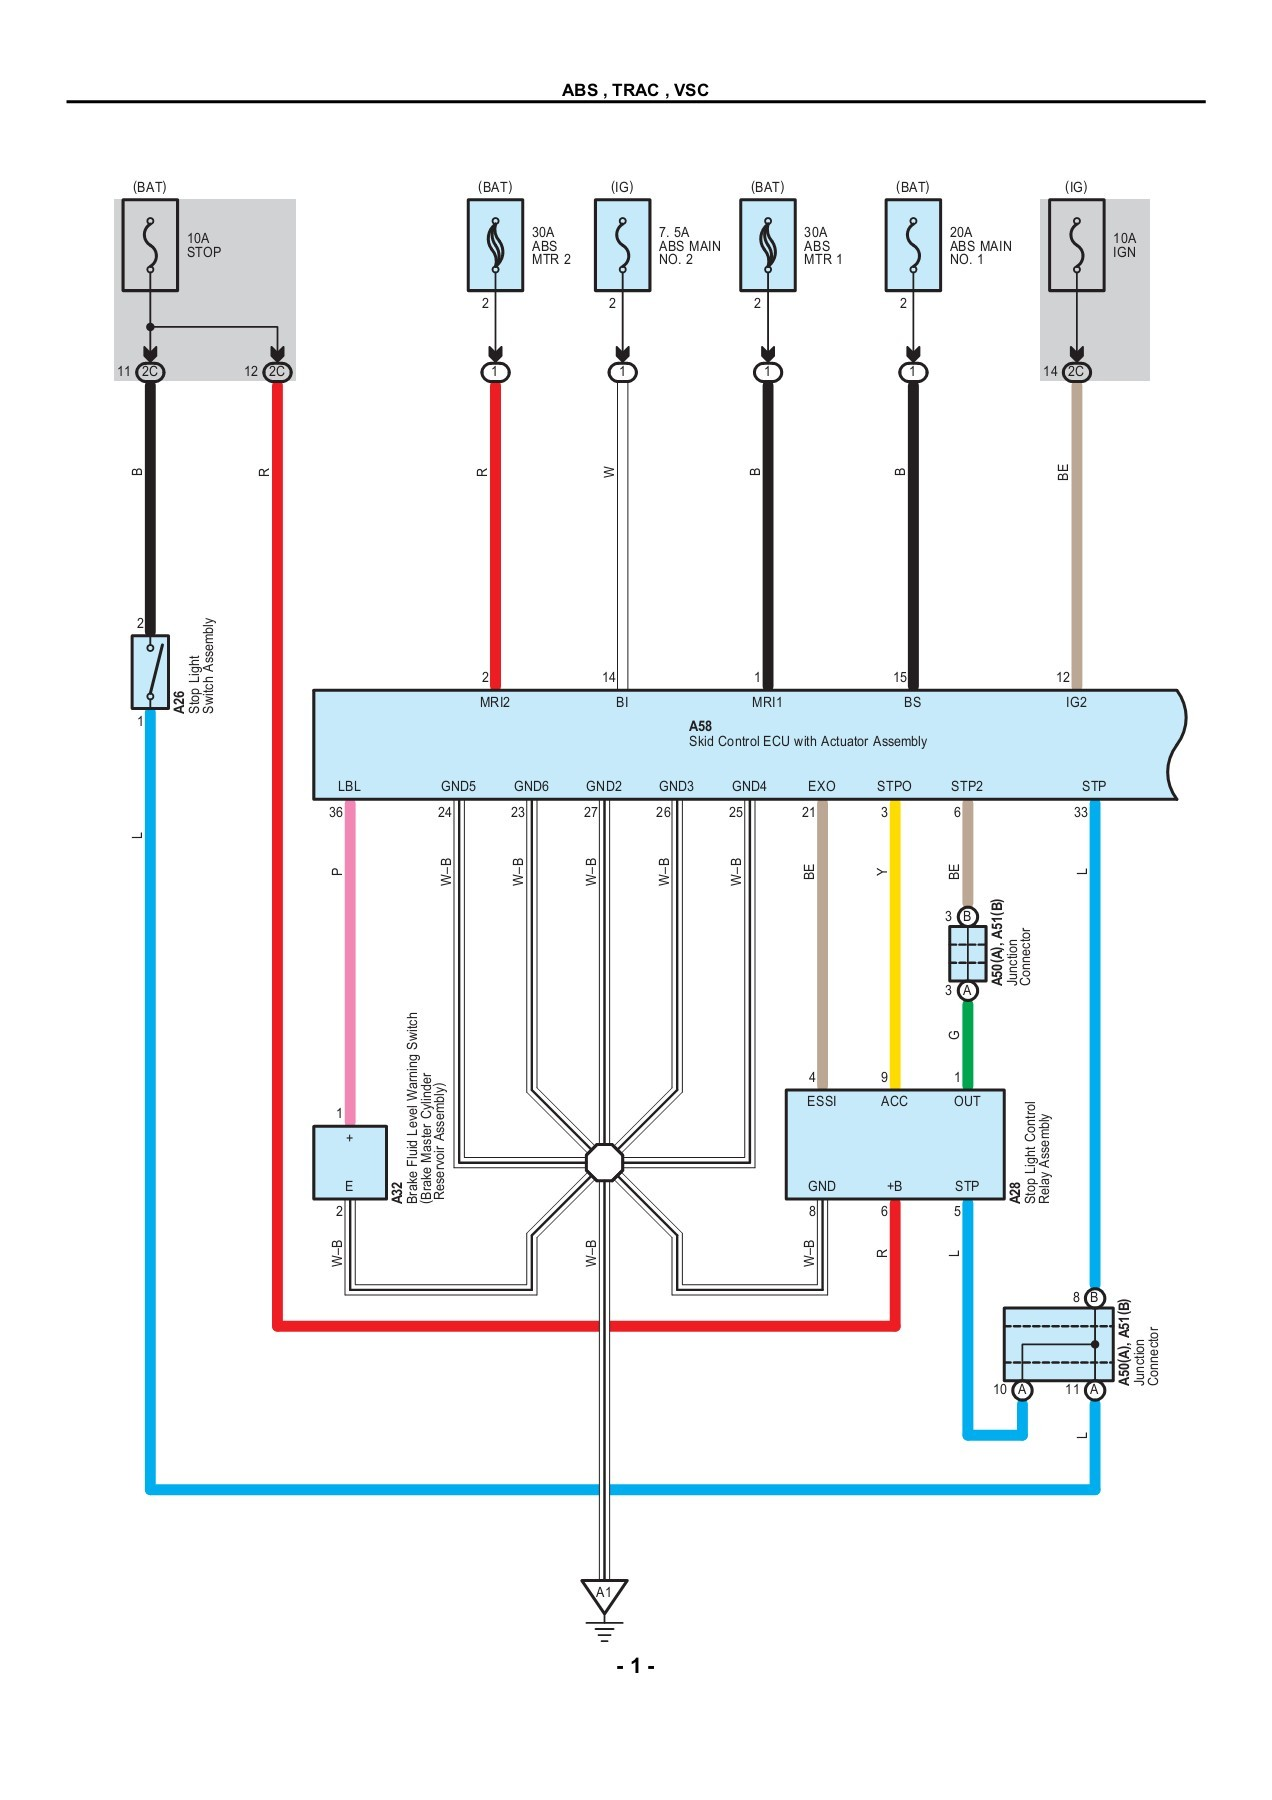 toyota prius 2010 electrical wiring diagrams pages 1 50 text version fliphtml5 [ 1272 x 1800 Pixel ]